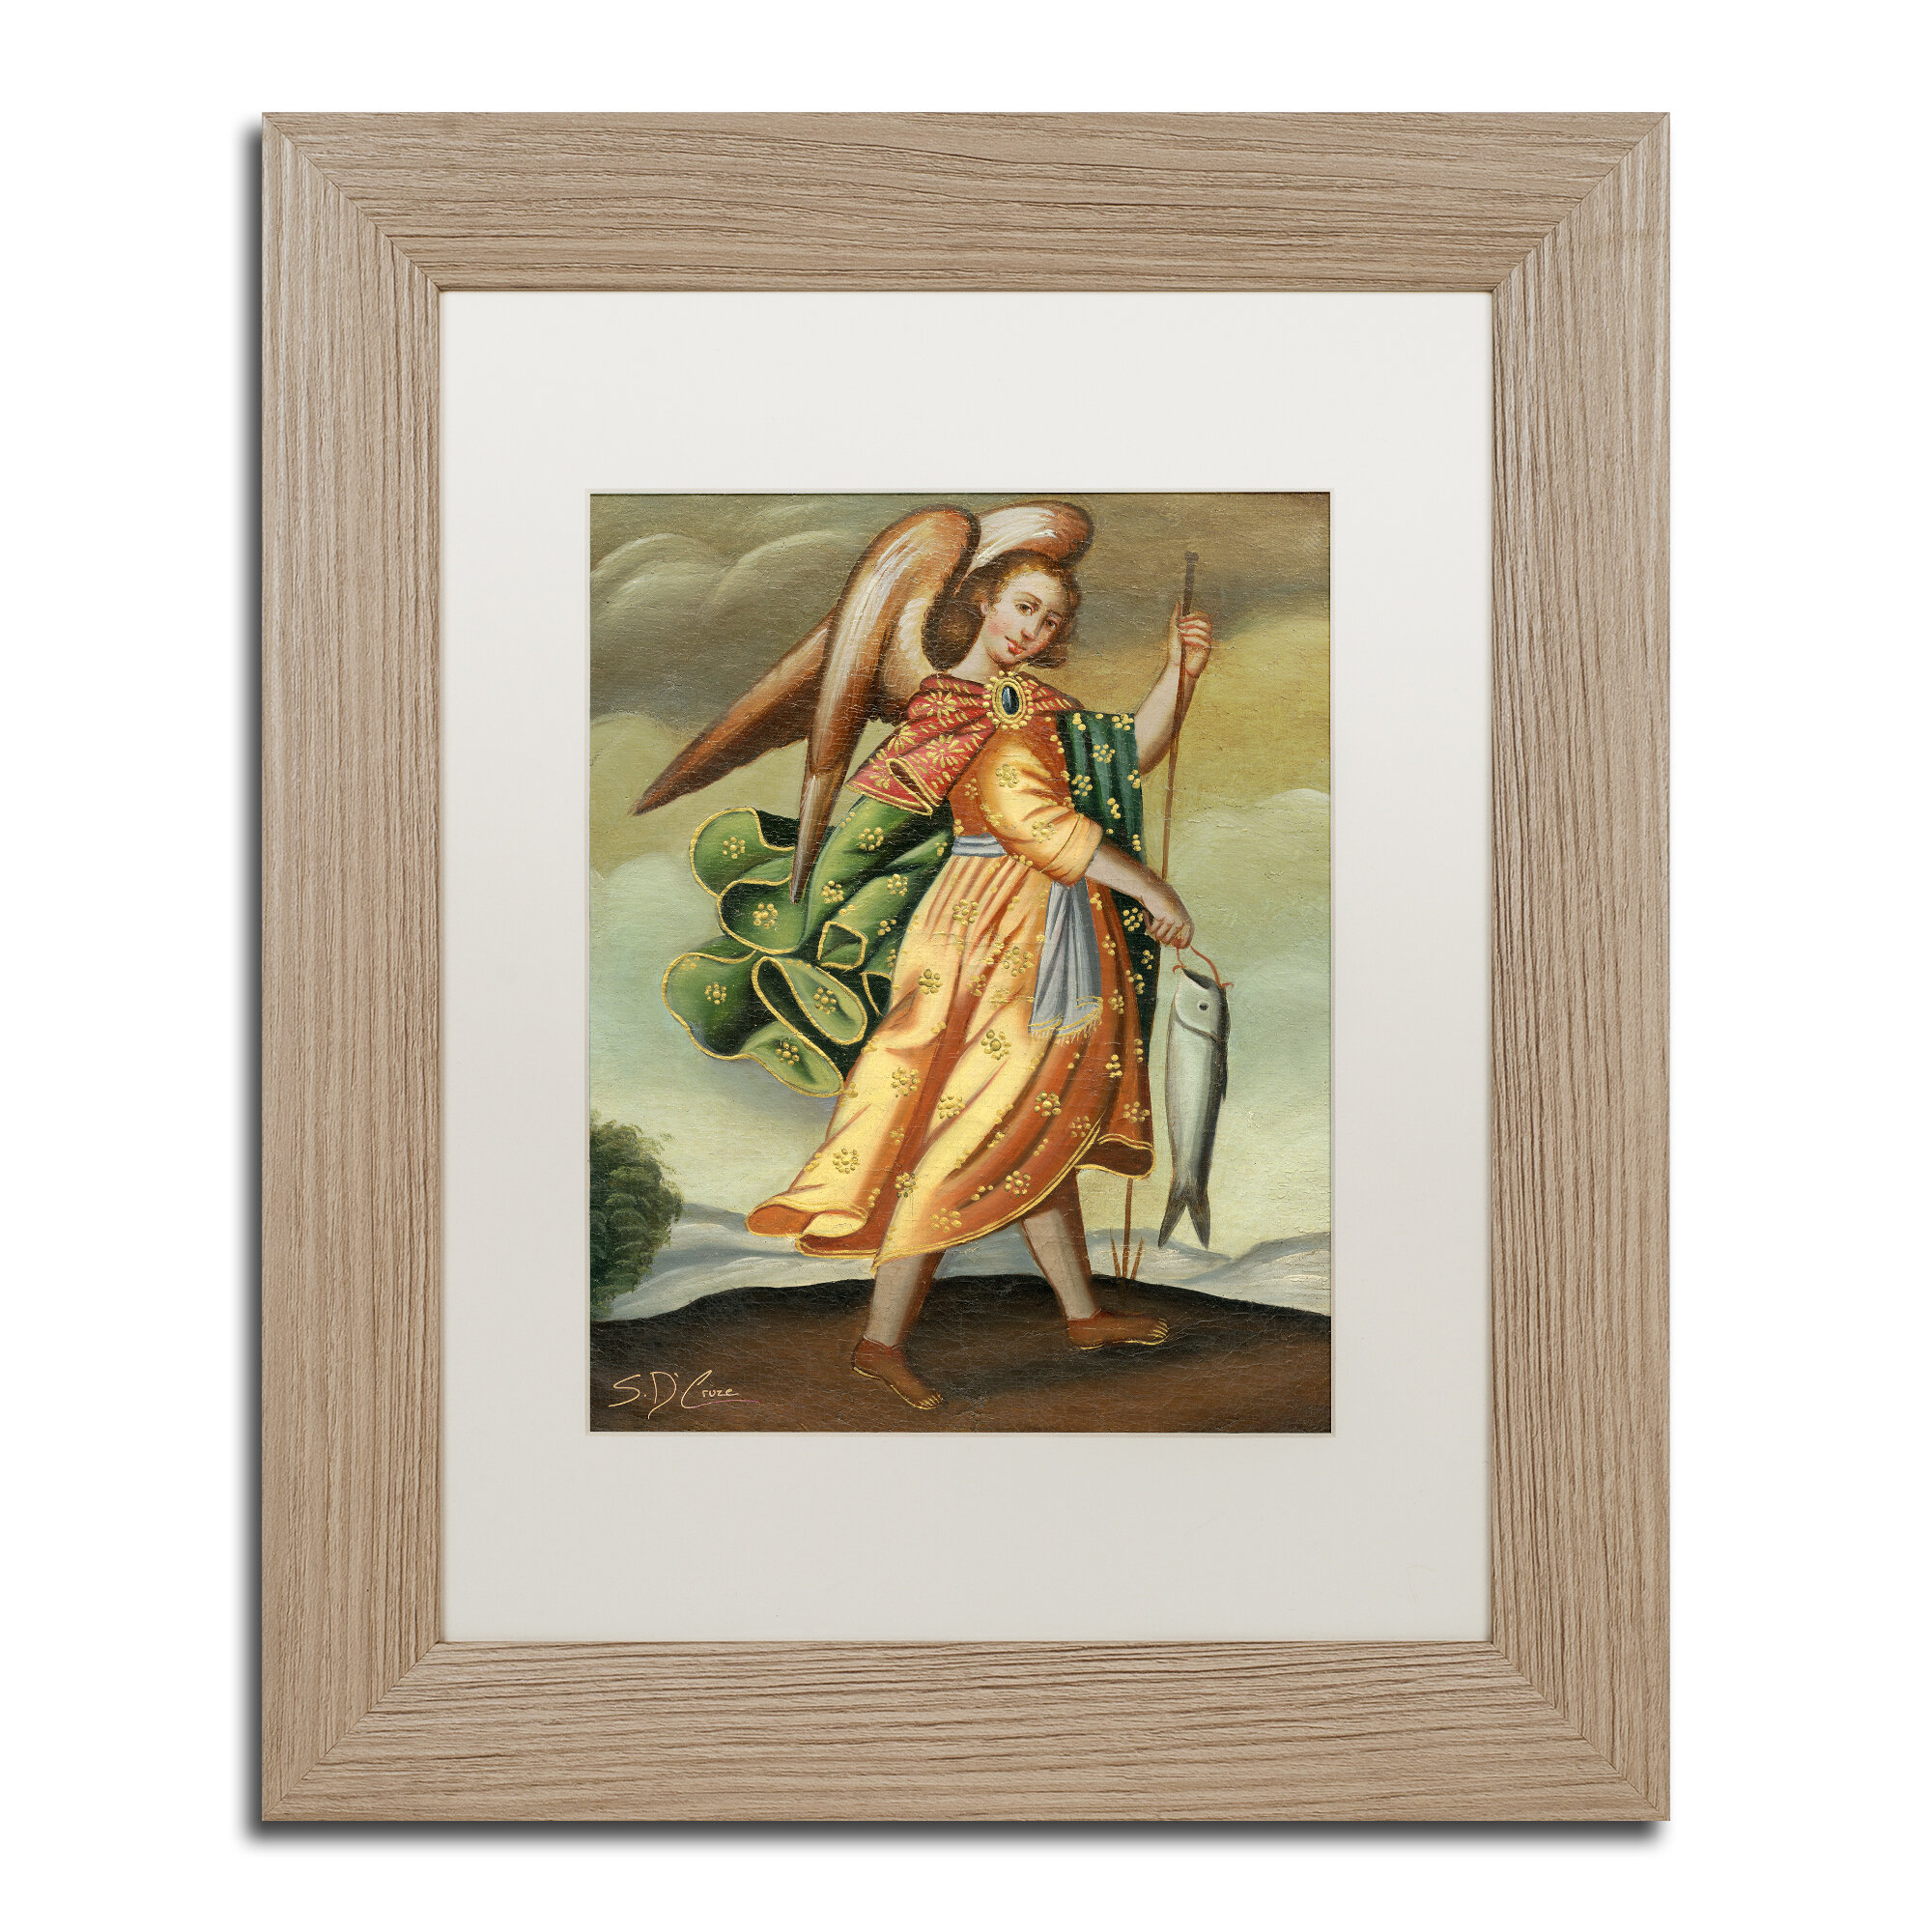 Trademark Art Fishers Of Men By Sergio Cruze Framed Painting Print On Canvas In Brown Wayfair